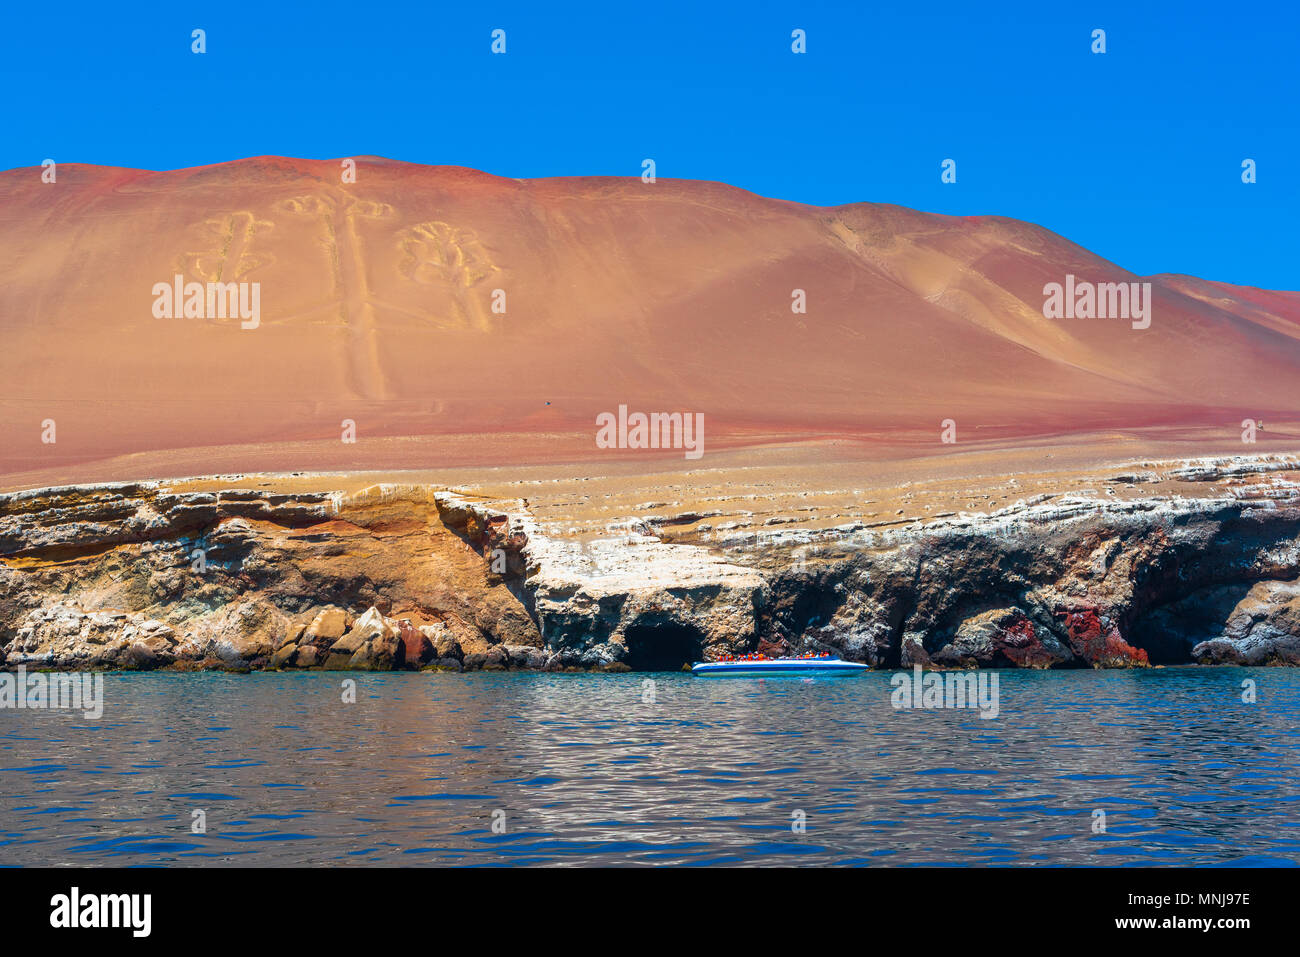 Paracas, Peru -- April 11, 2018. A tour boat hovers near desert caves on the coast of the Paracas Desert.  The famous Nazca lines are replicated on a  - Stock Image